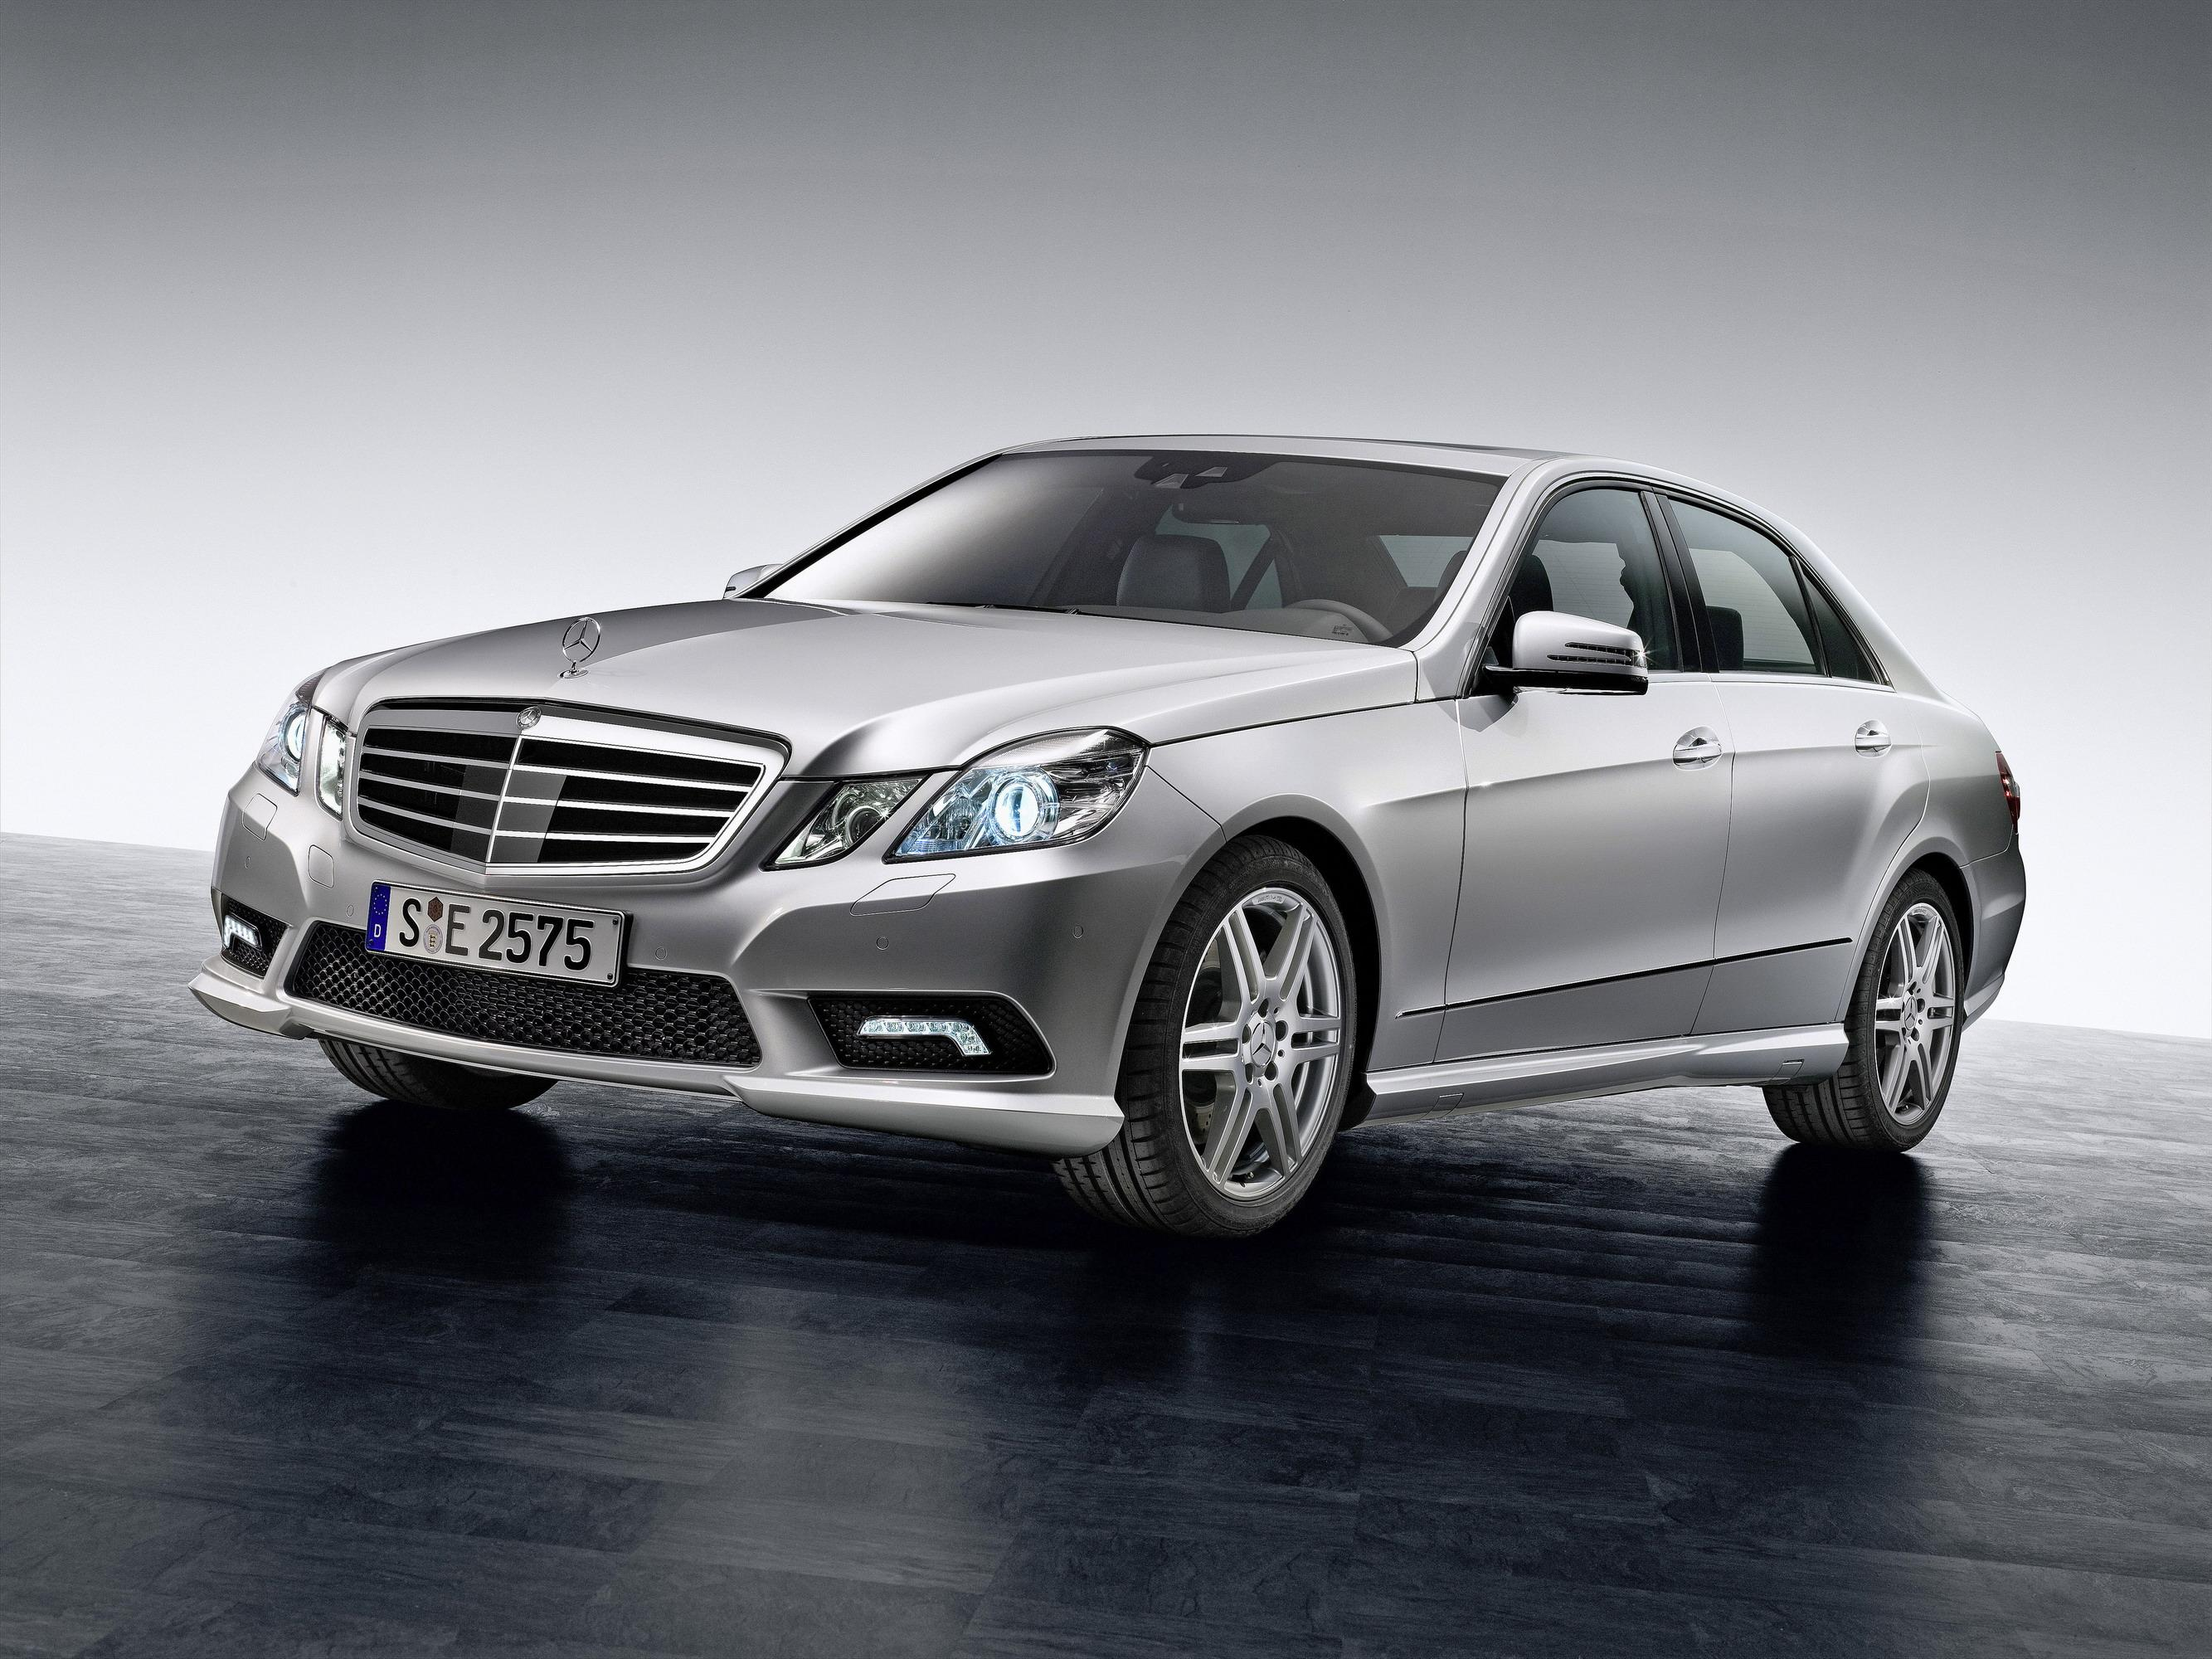 2009 mercedes e class amg sports package review top speed. Black Bedroom Furniture Sets. Home Design Ideas